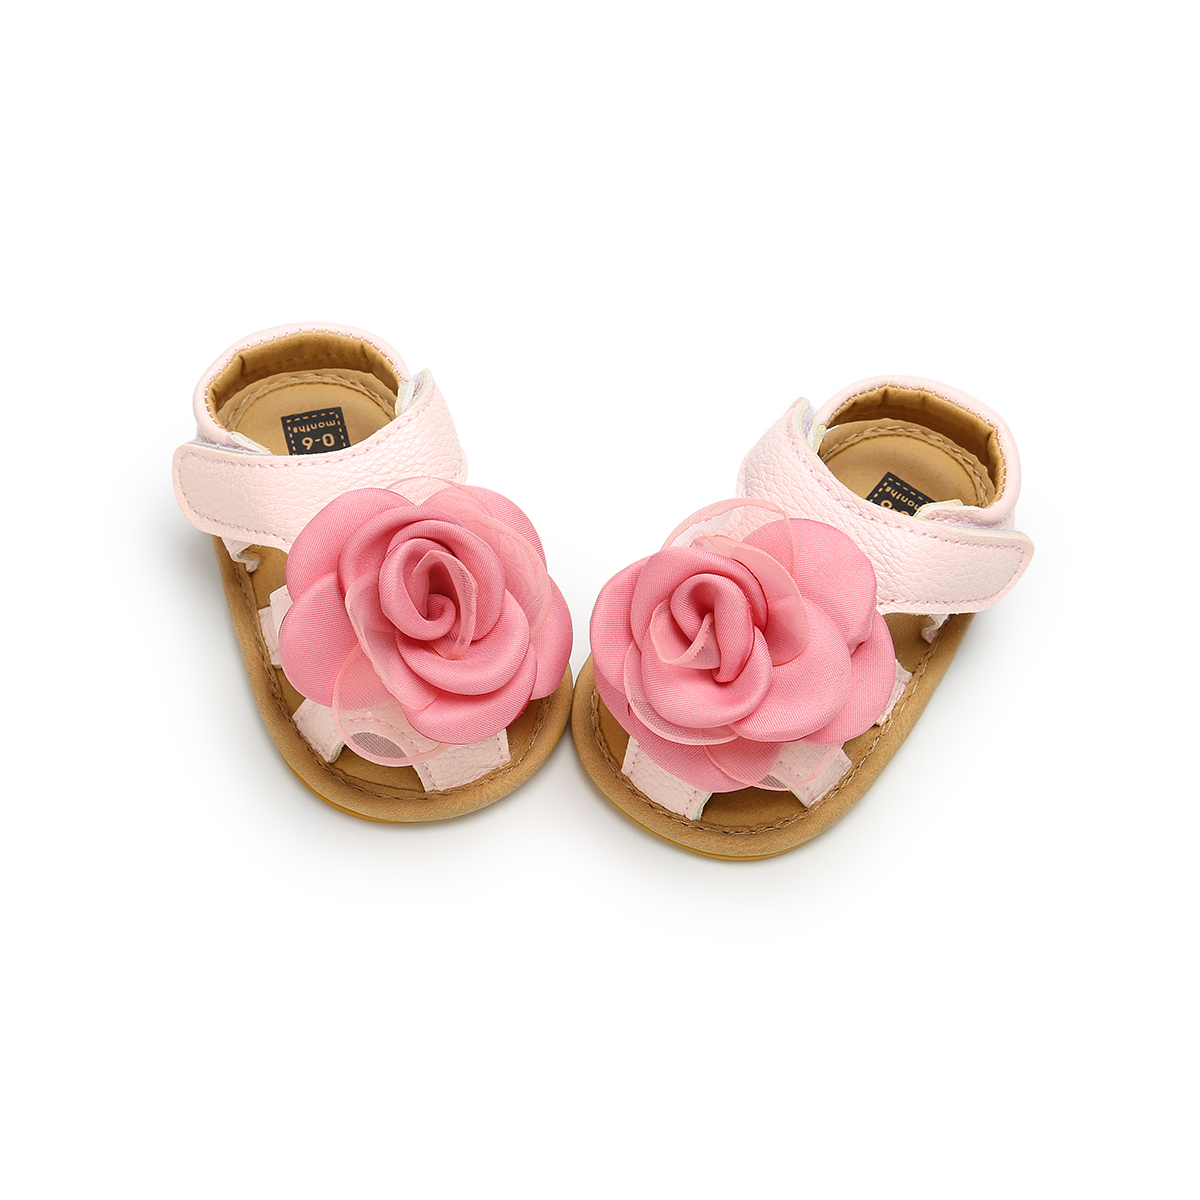 2019 Summer Kids Infant Cute Shoes Baby Girl Boy Toddler Sandals Moccasins Cheap